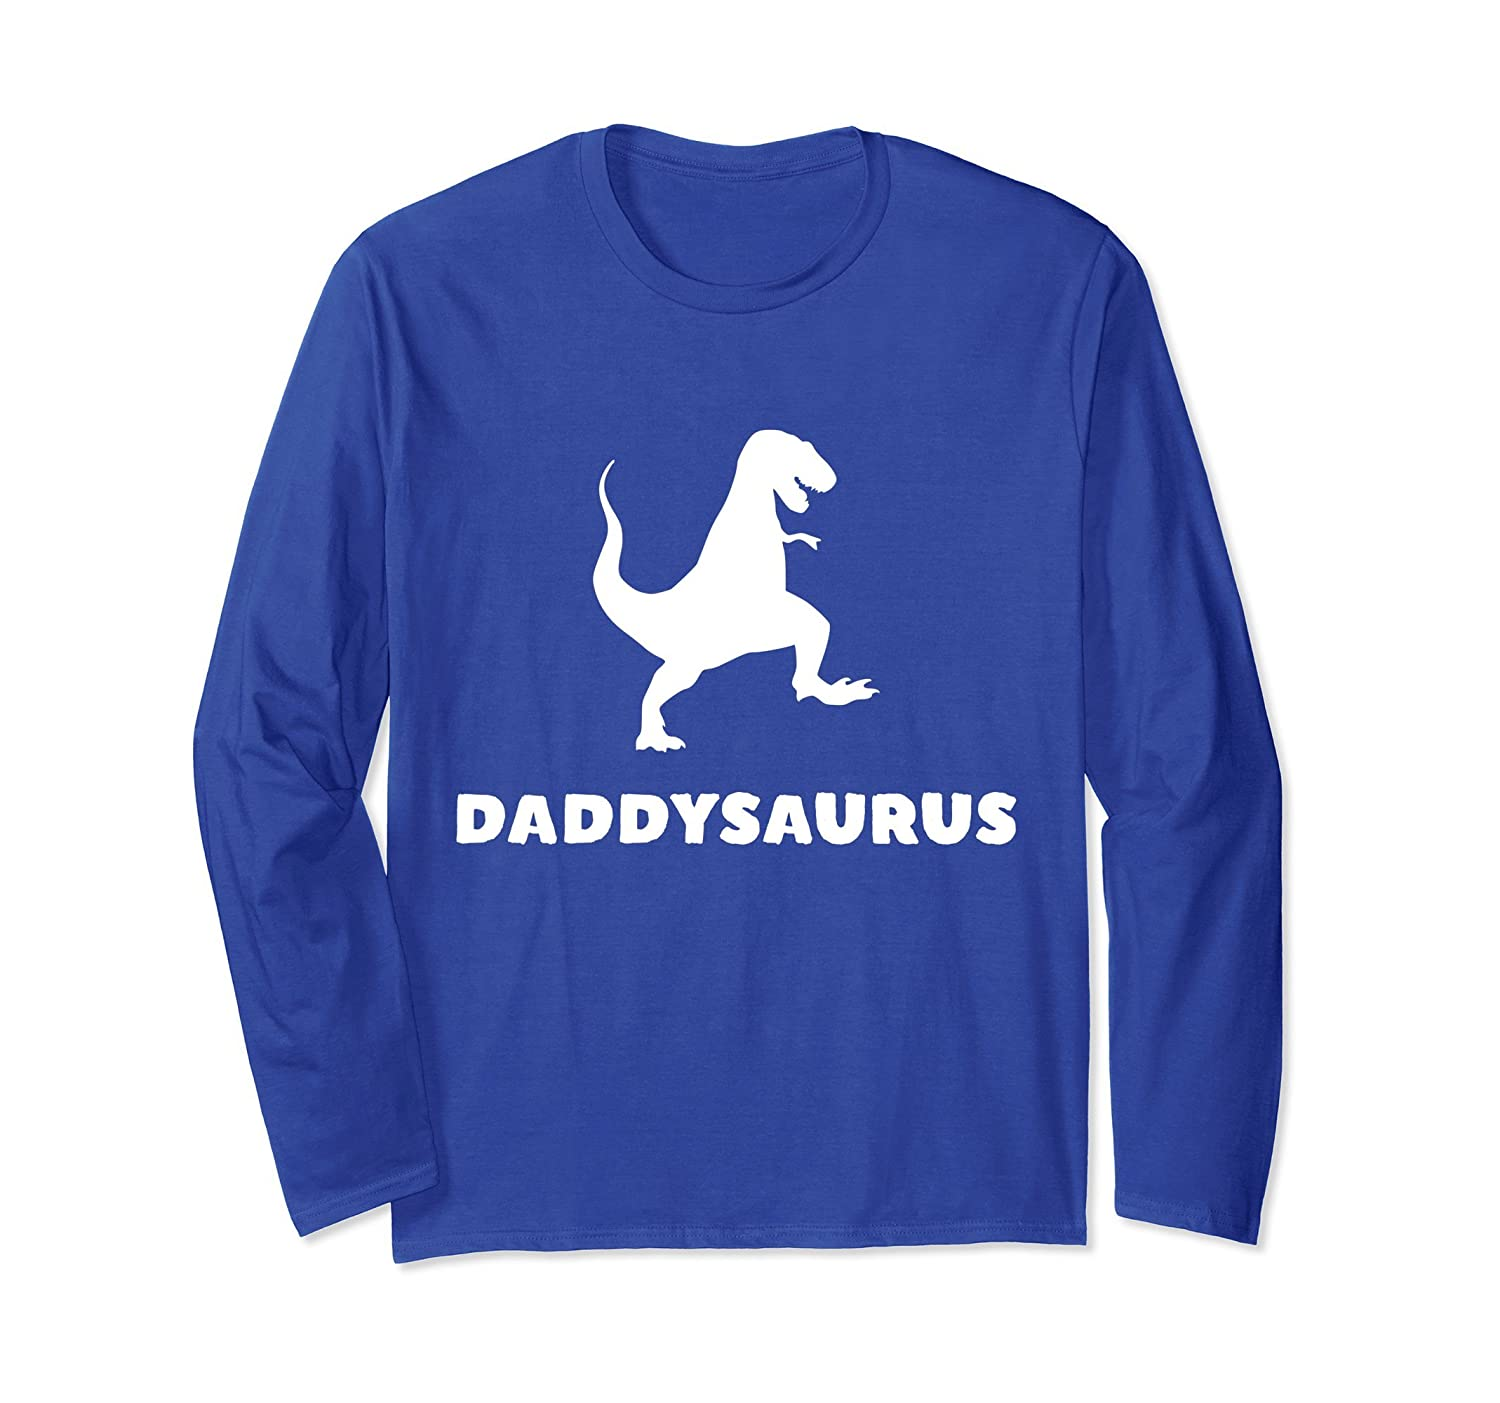 Daddysaurus Shirt Fathers Day Dad Gifts Long Sleeve T-shirt-mt